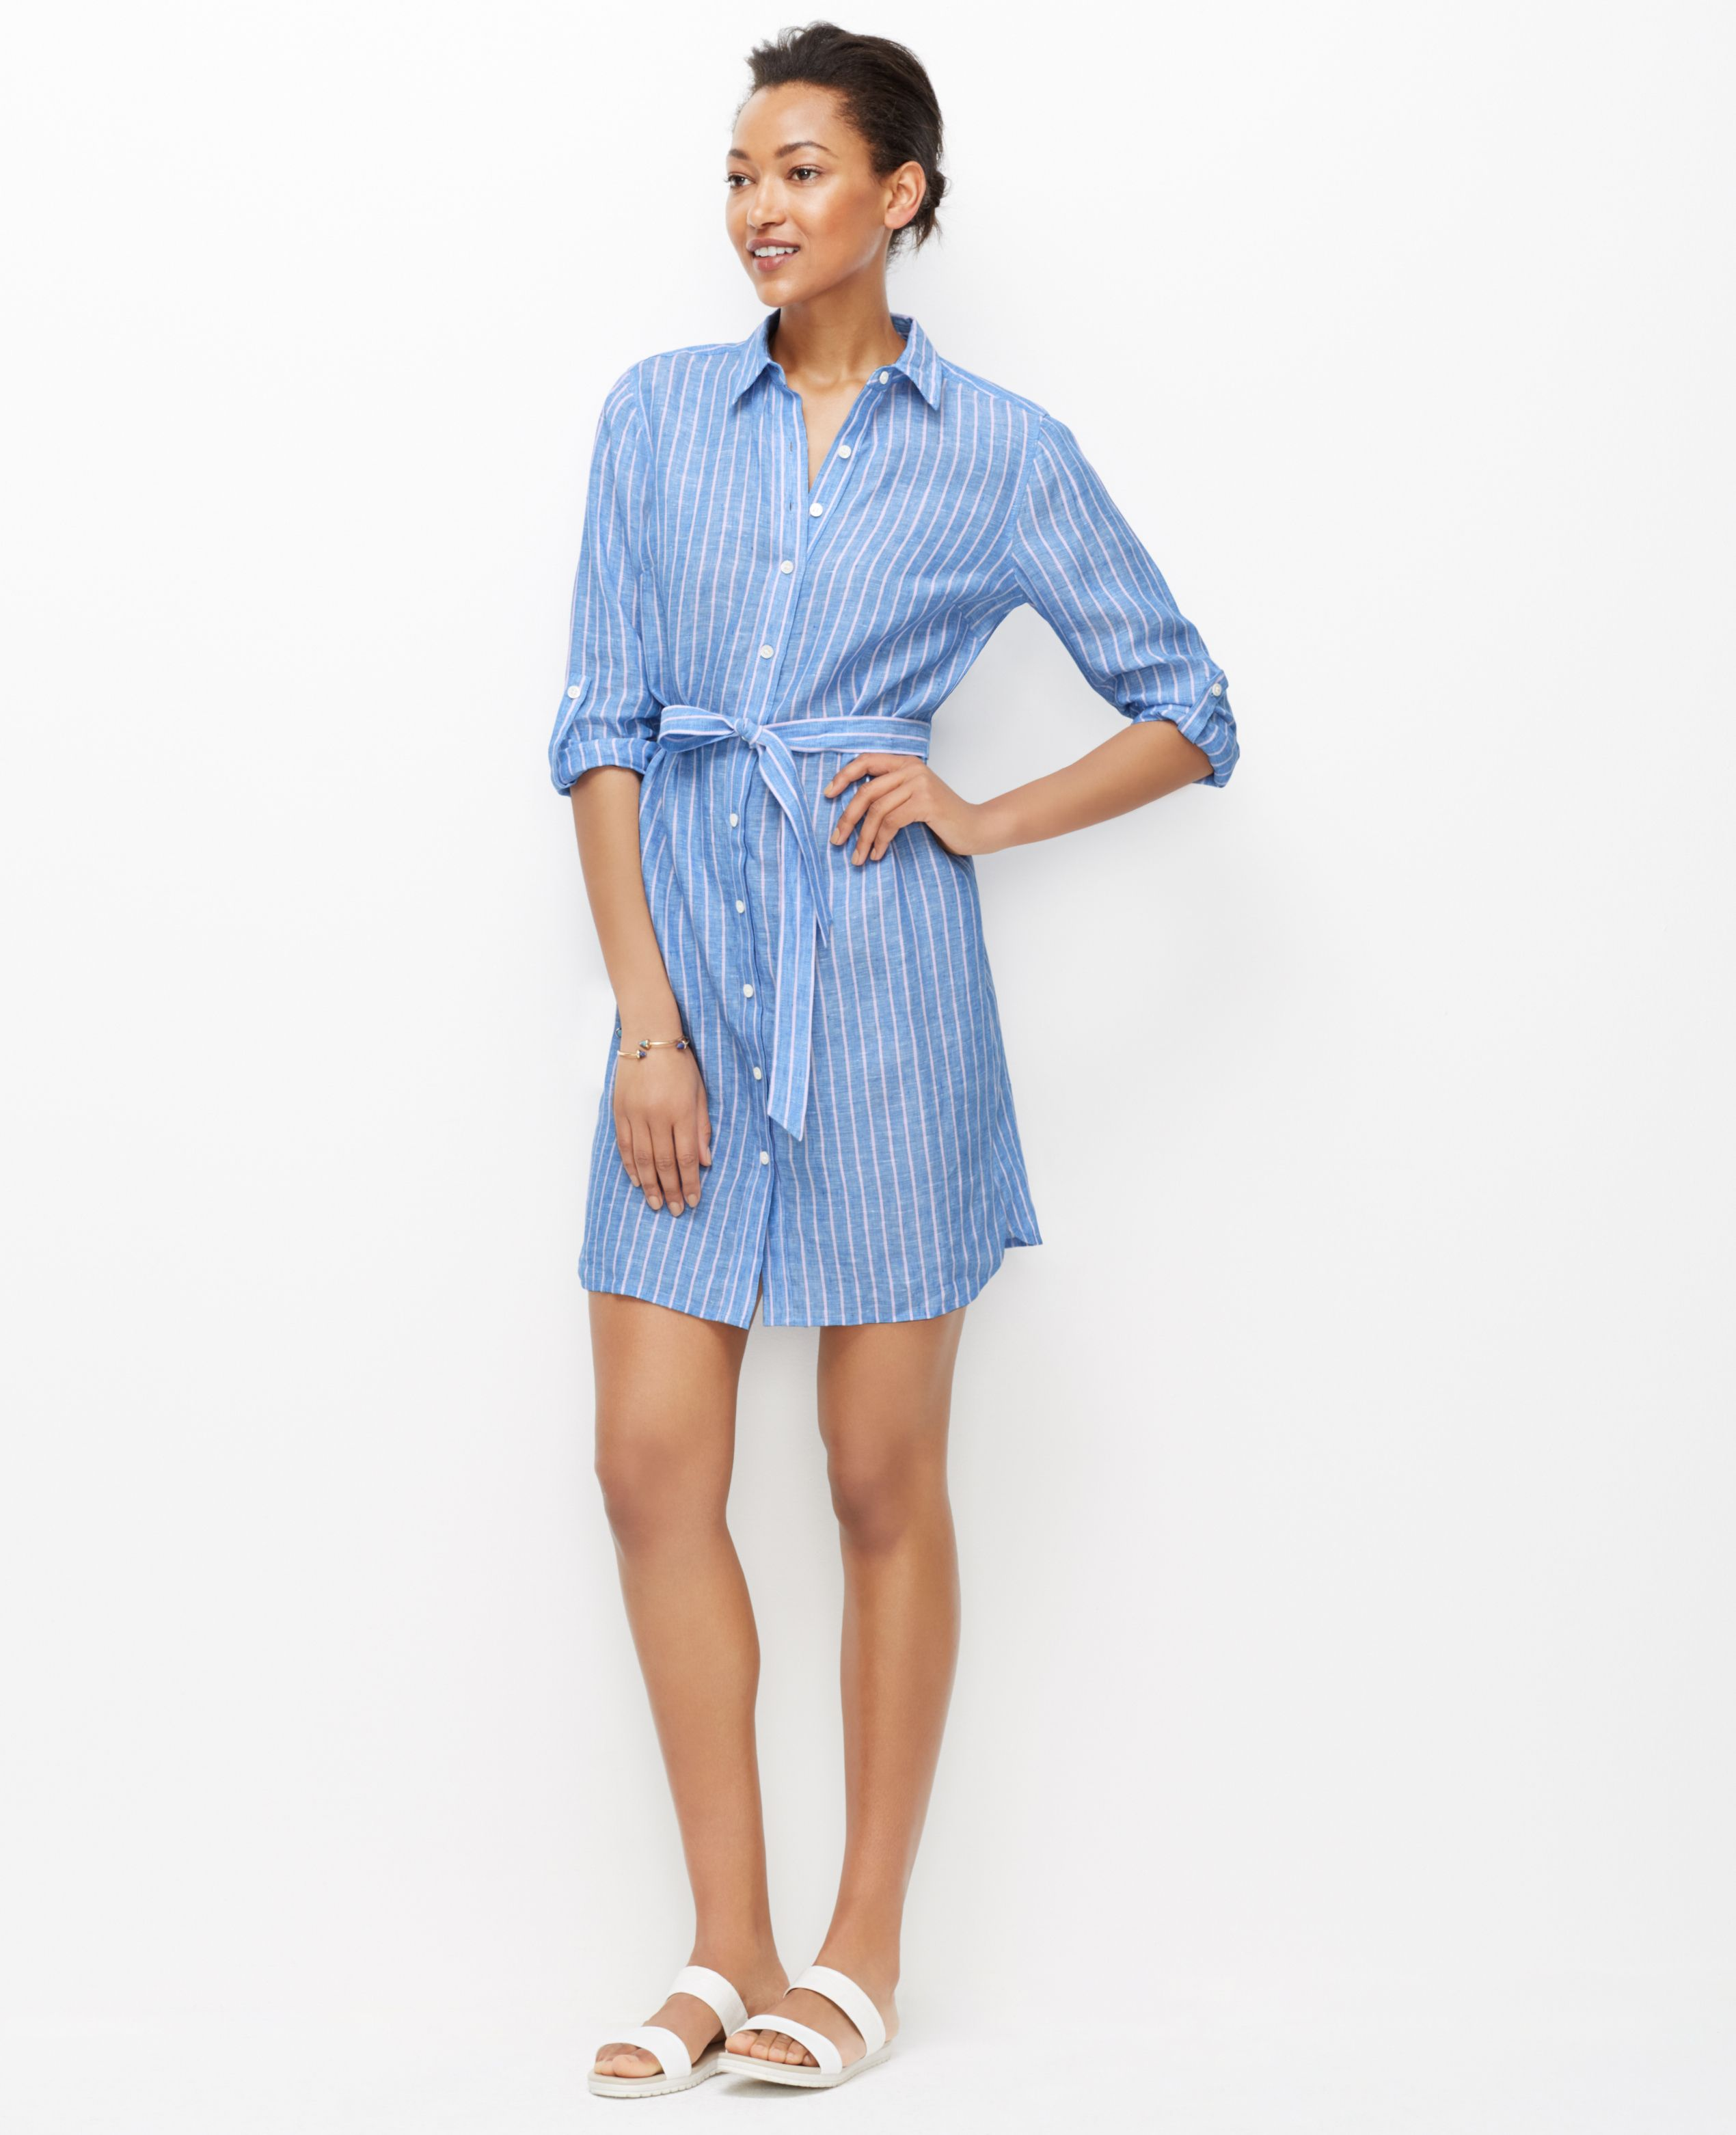 17 Best images about Shirt-dresses on Pinterest  Chambray ...